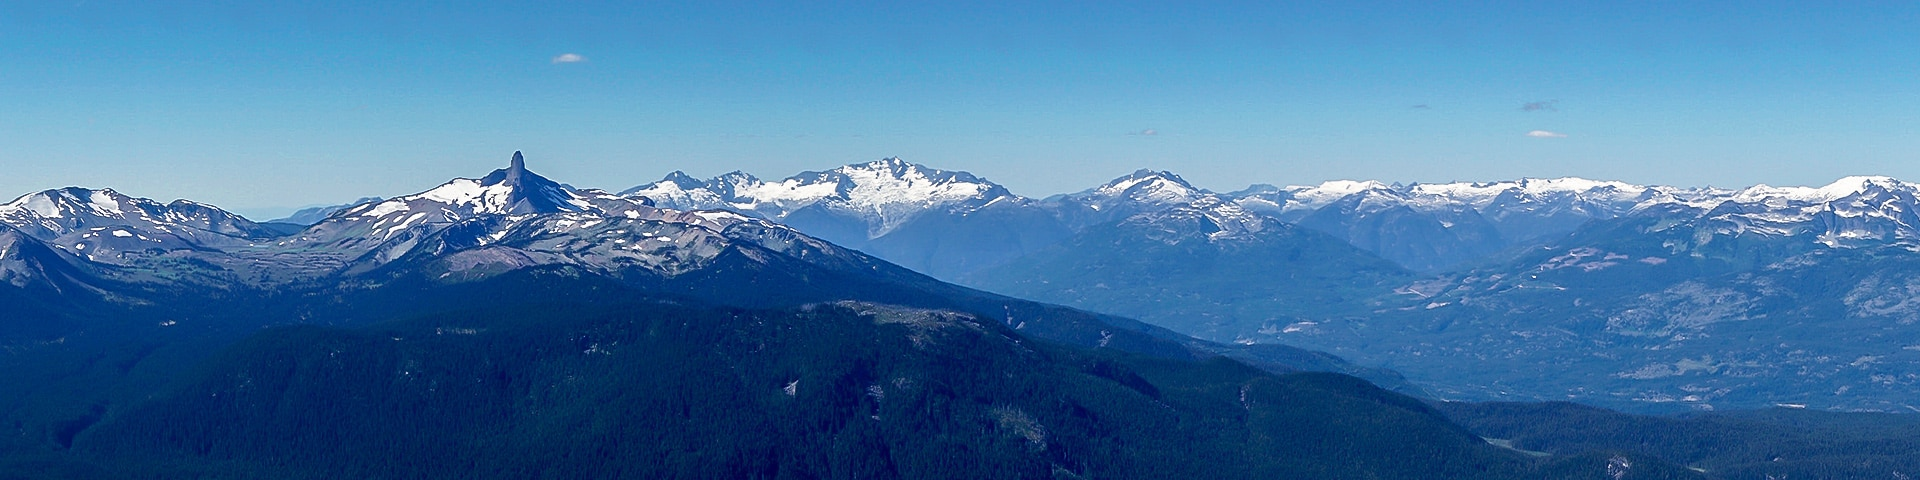 Panorama of the High Note Trail hike in Whistler, British Columbia